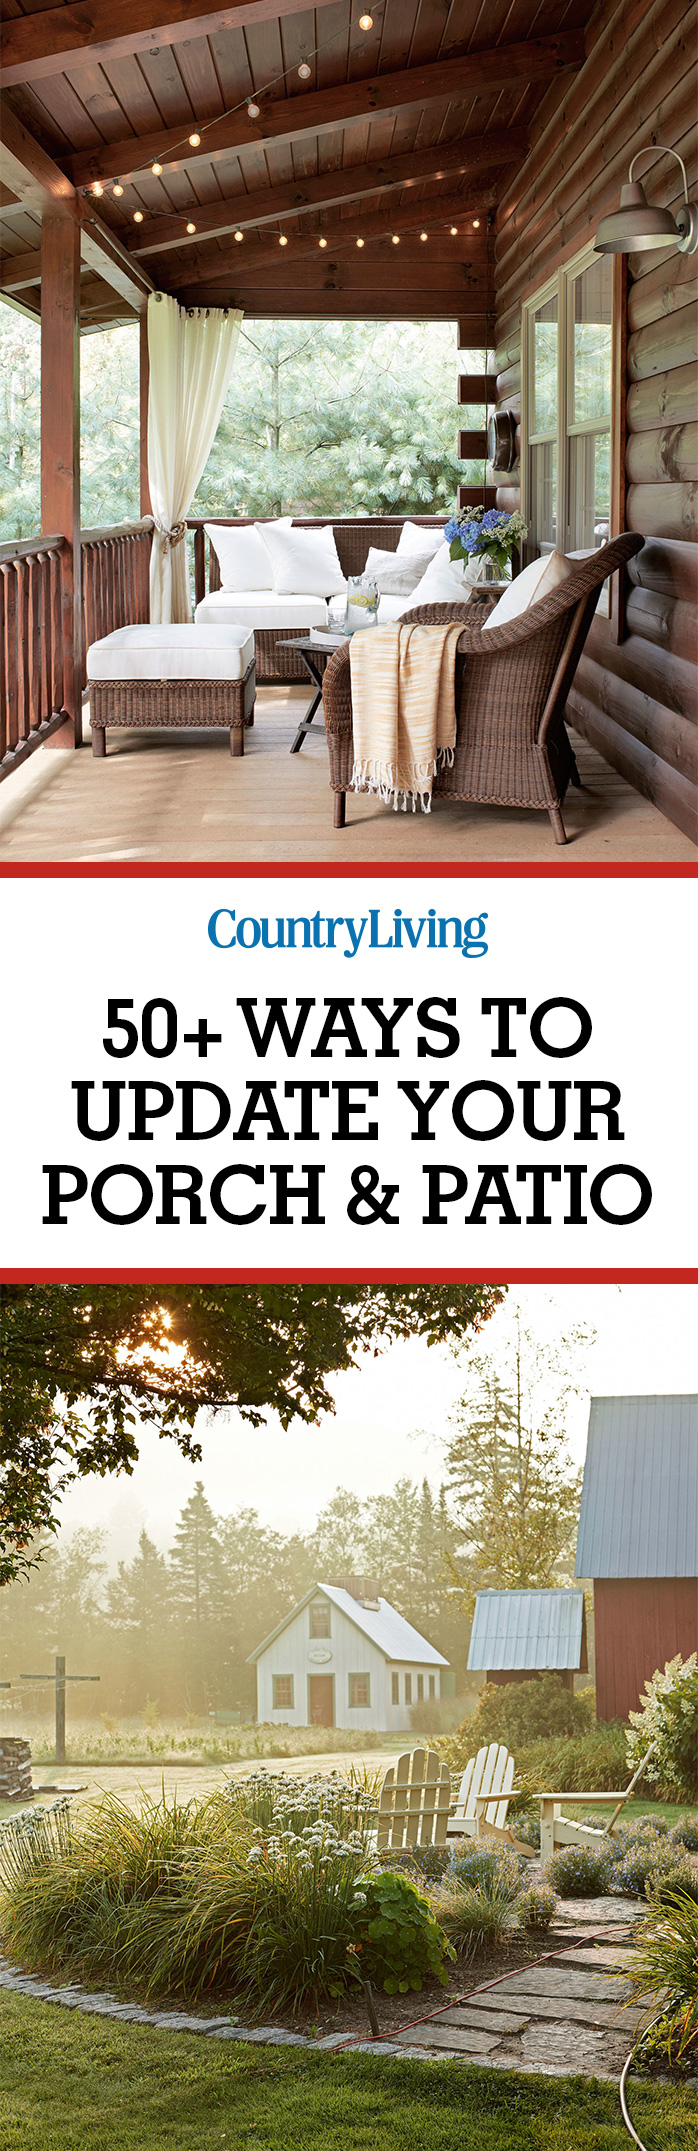 65+ Best Patio Designs for 2017 - Ideas for Front Porch ... on Country Patio Ideas id=89093